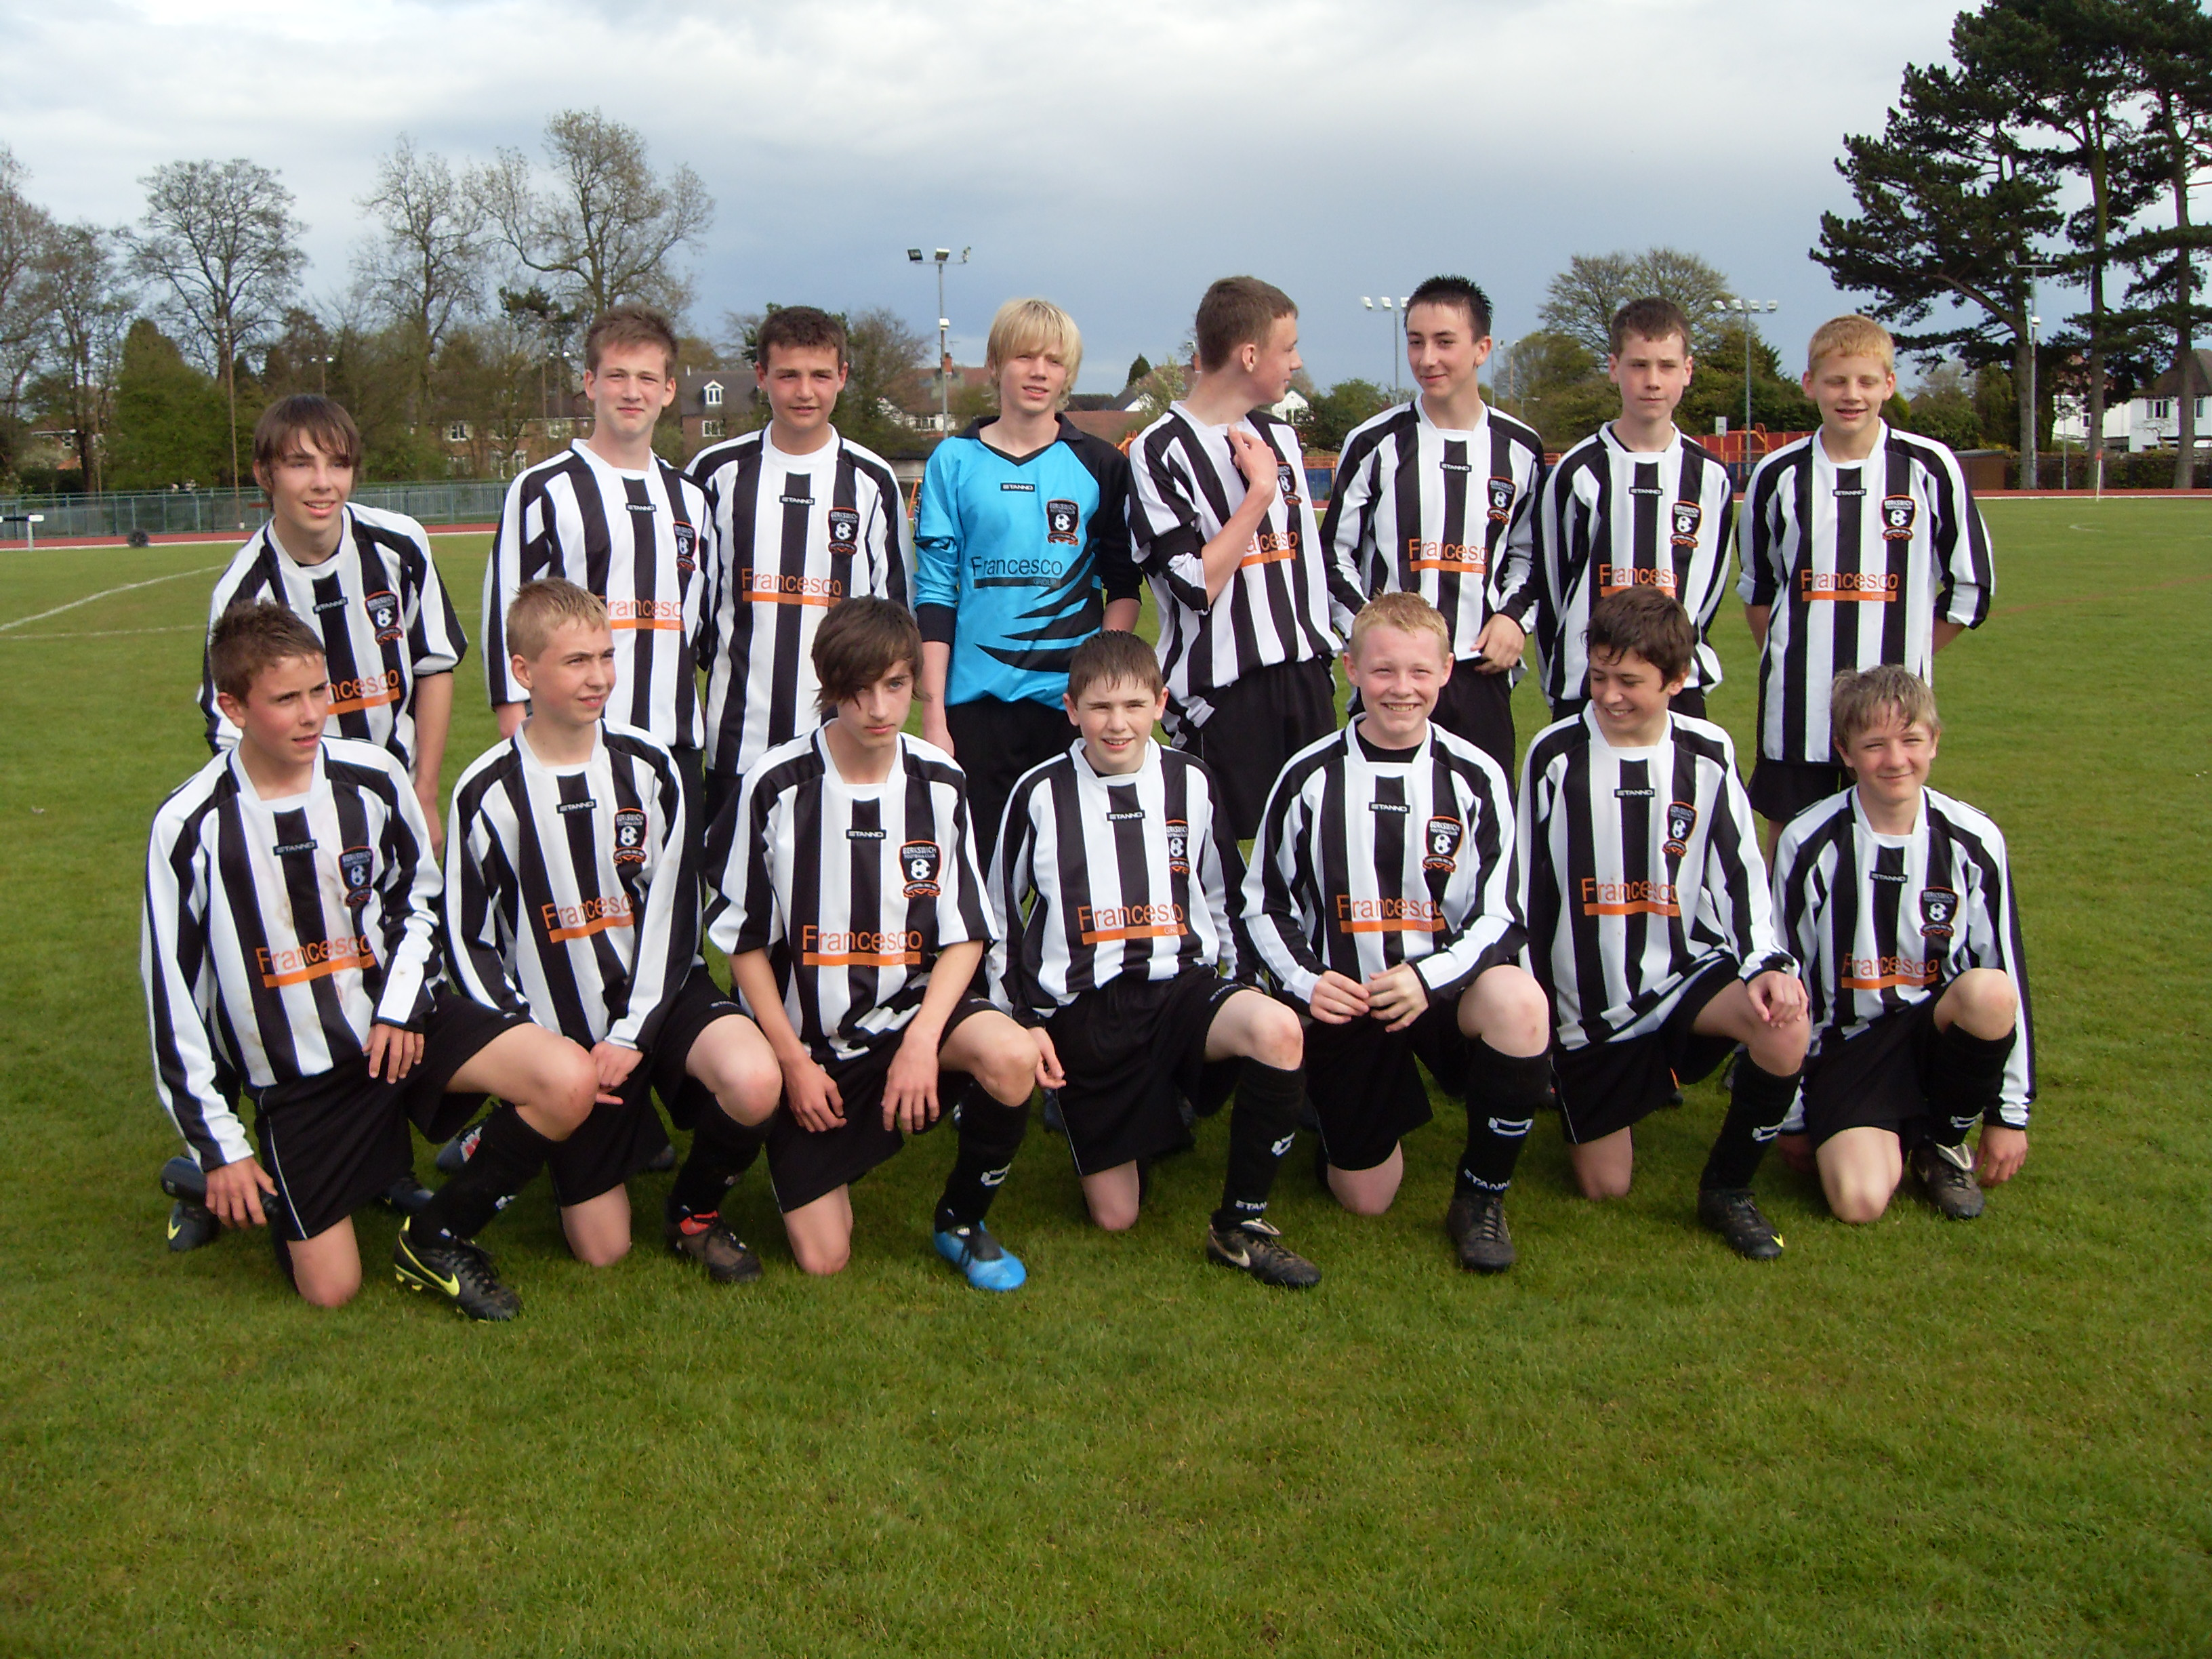 Berkswich under 14s Cup Winners & League Champions 2010